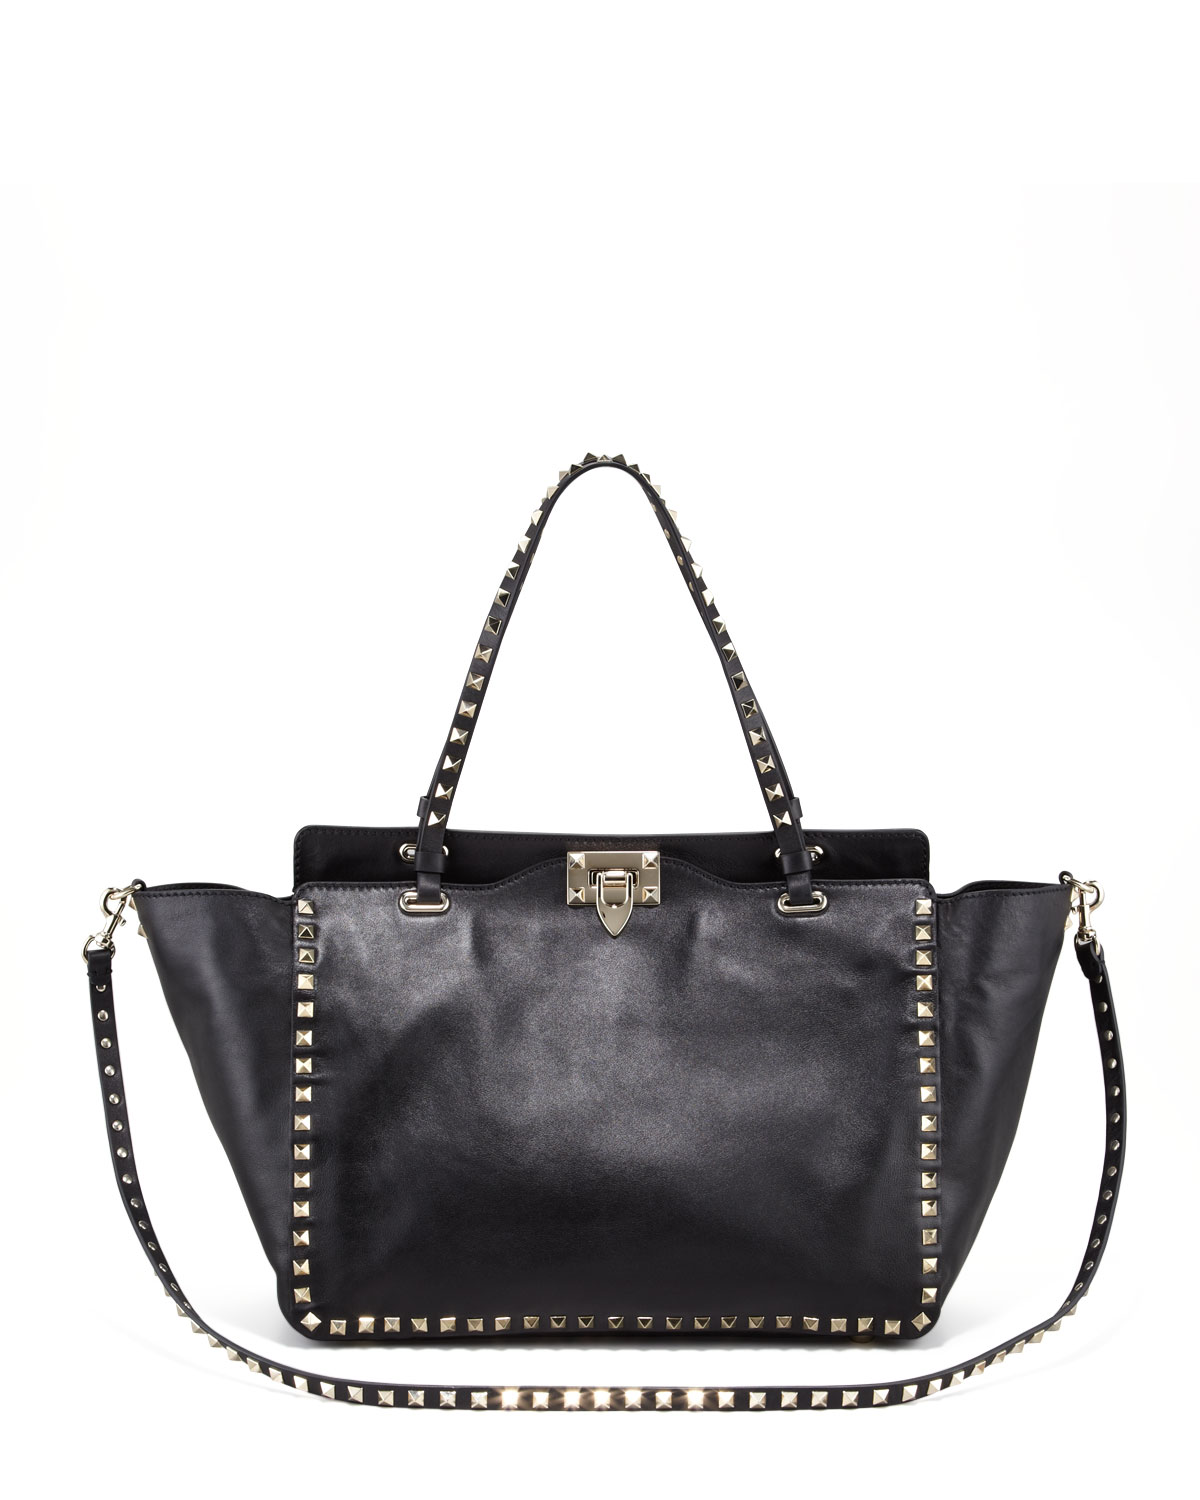 Rockstud Medium Tote, Nero, Black - Valentino